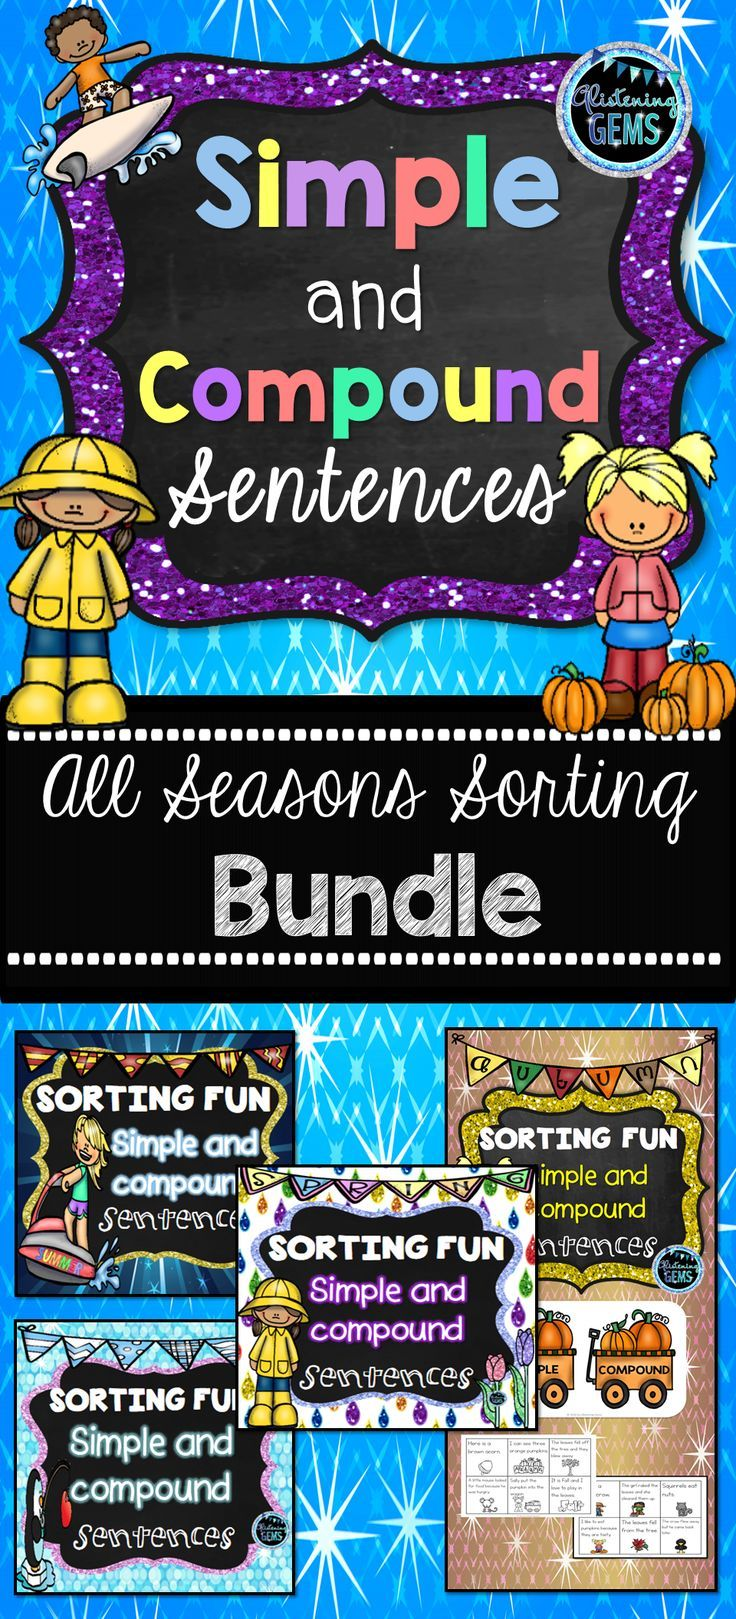 Simple and Compound Sentences Sorting Centers for all seasons of the year.